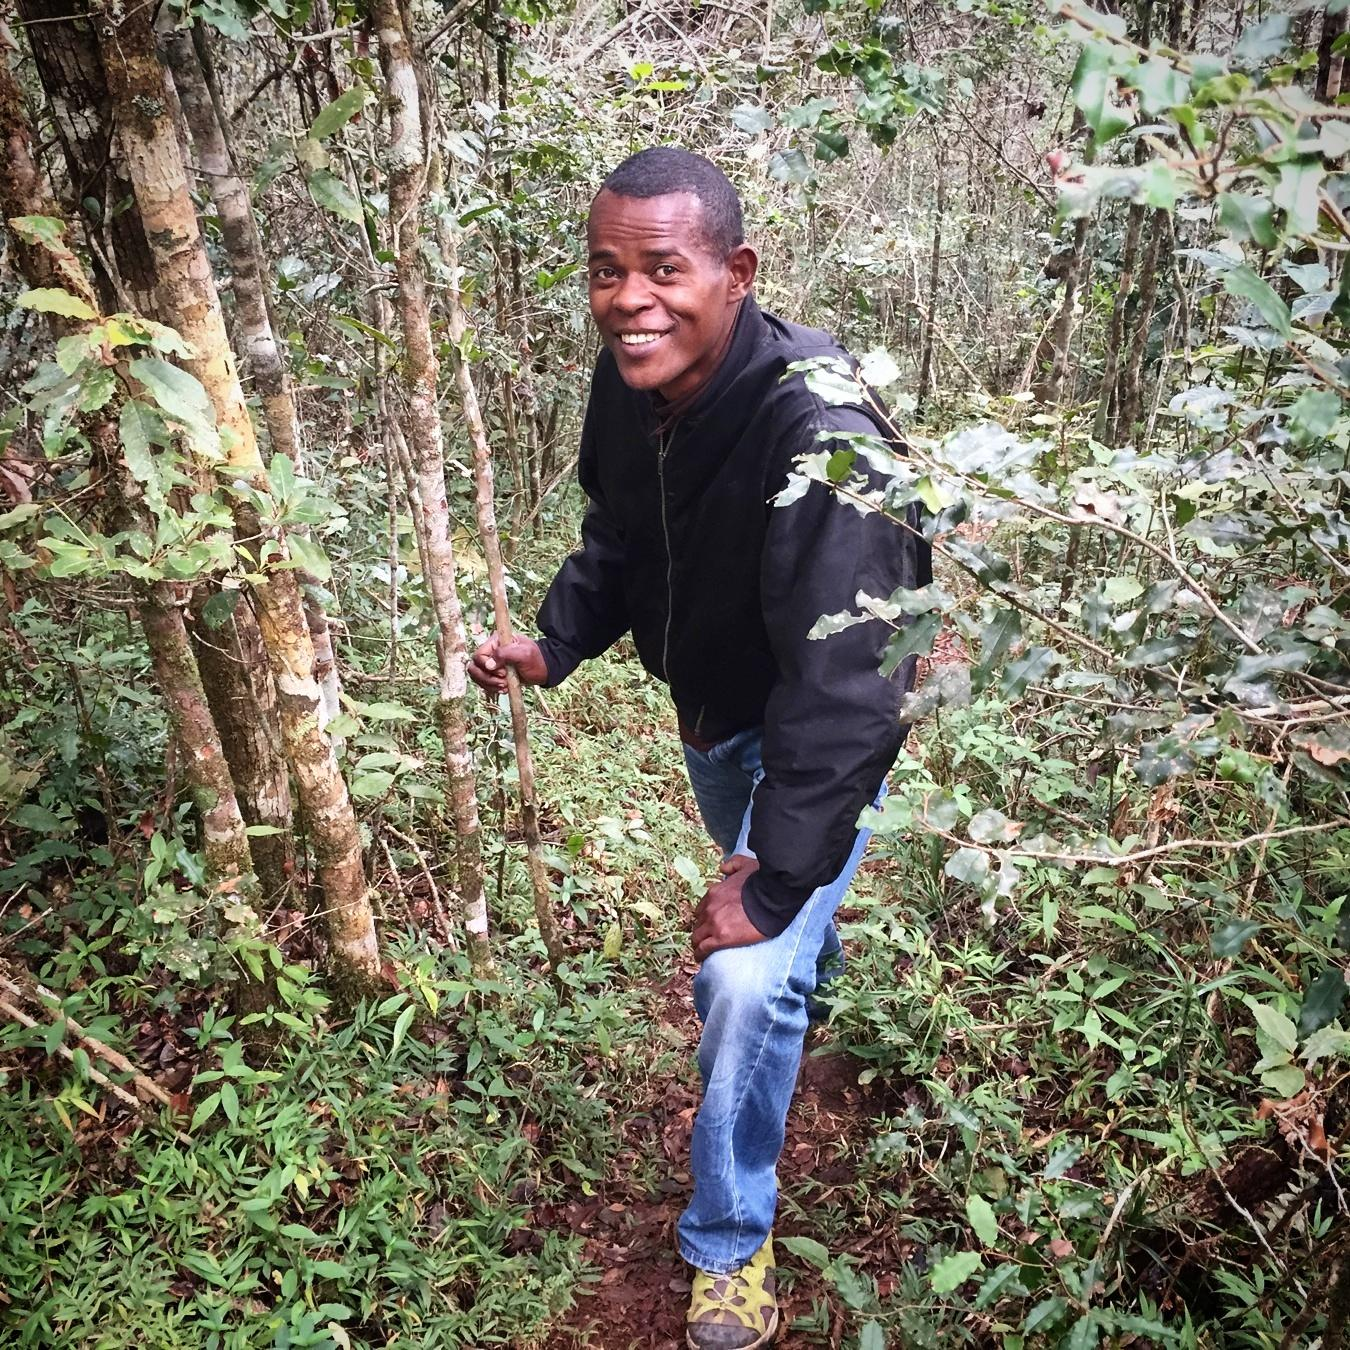 Genot takes a breather in the Saha Forest. Noah Strycker